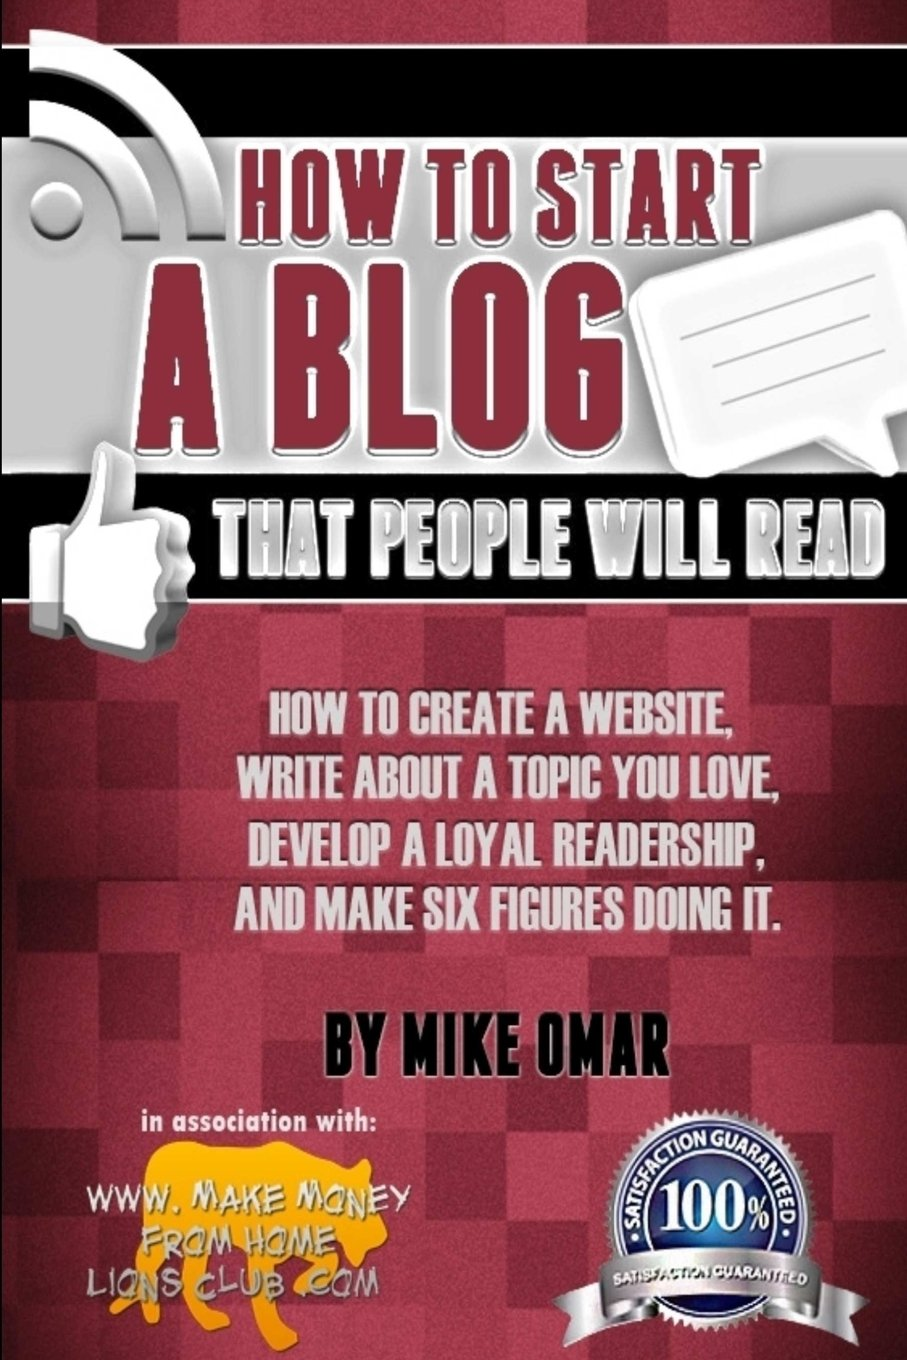 How to Start a Blog that People Will Read: How to create a website, write about a topic you love, develop a loyal readership, and make six figures doing it. (THE MAKE MONEY FROM HOME LIONS CLUB) ebook